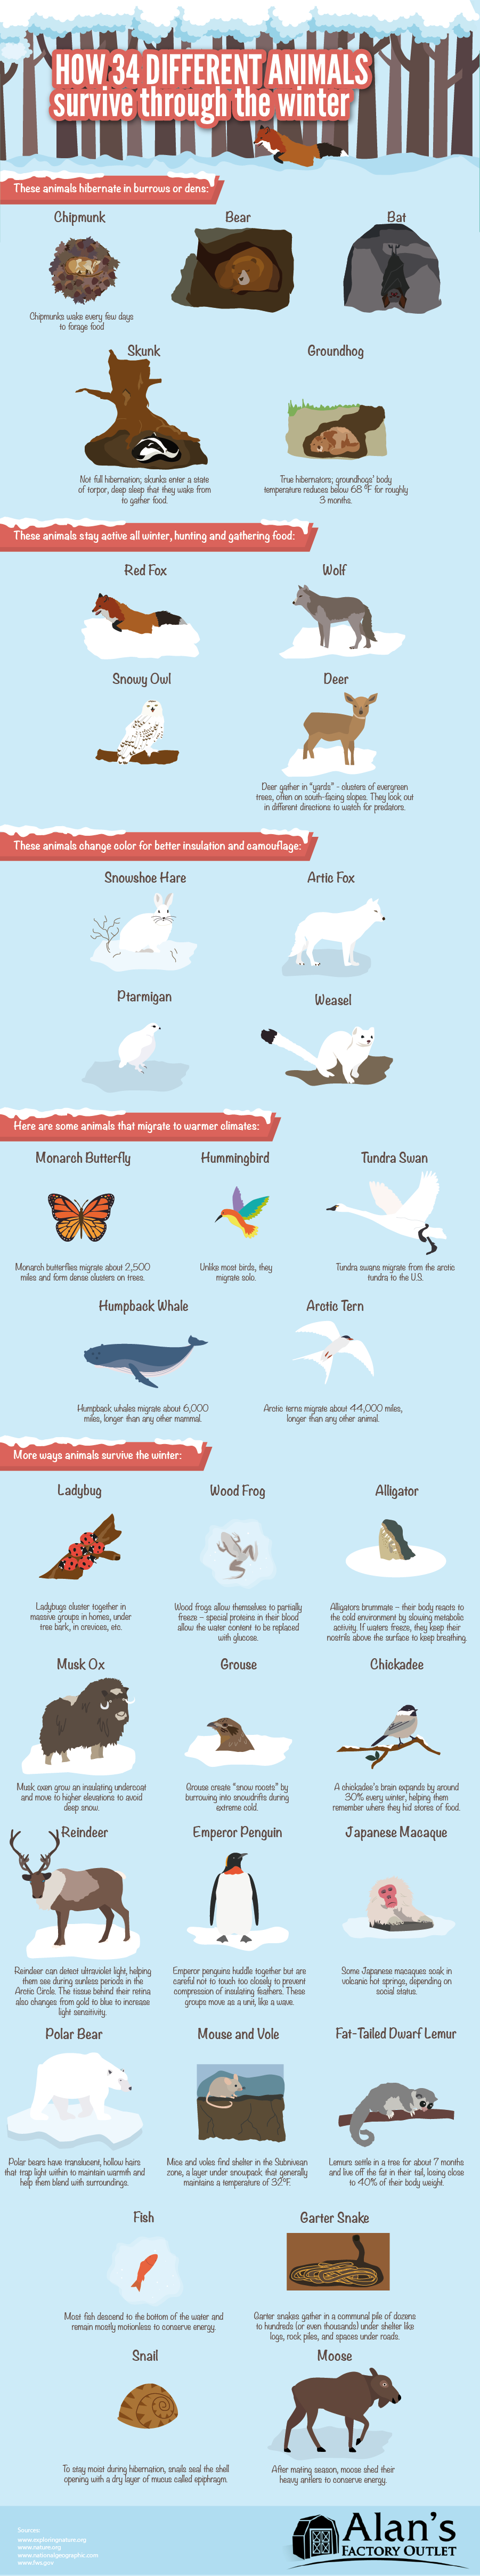 Survival Instinct: The Hibernation Process of 34 Animals, Birds and Insects - Infographic